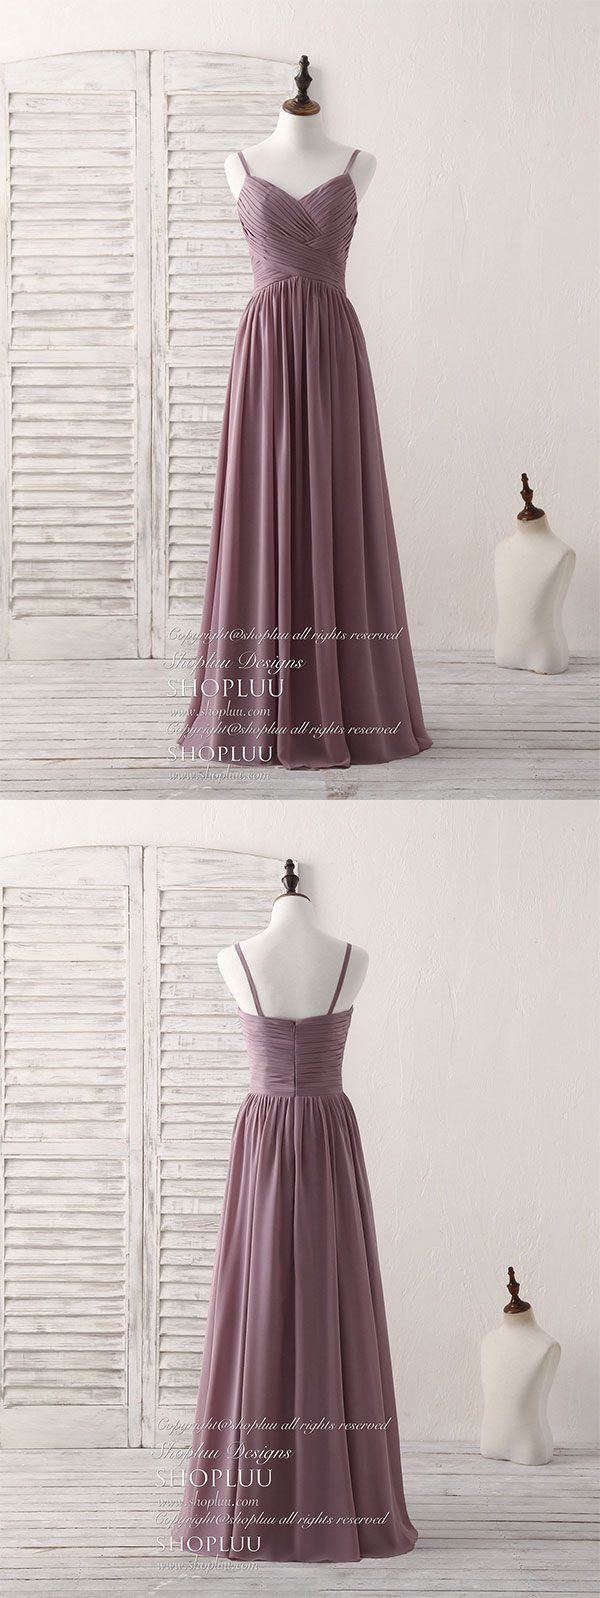 Wedding dress restoration  Simple v neck chiffon long prom dress dark pink bridesmaid dress